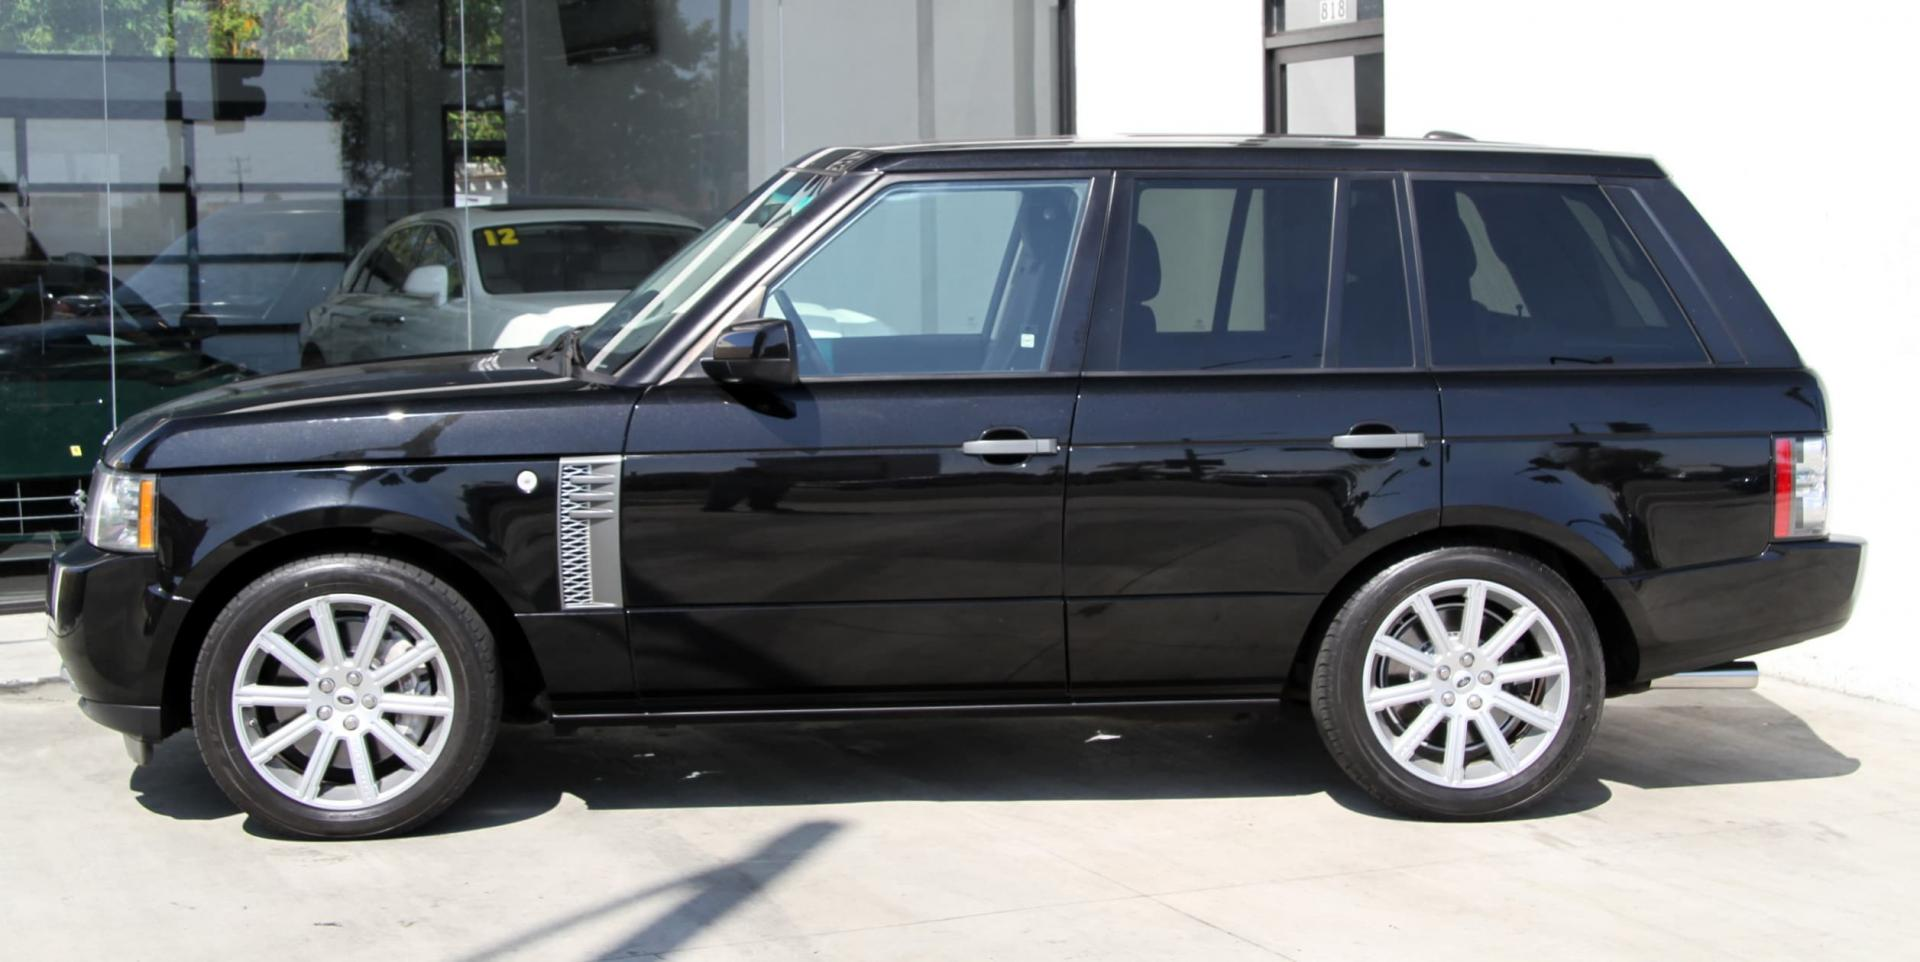 Used Range Rovers For Sale >> 2011 Land Rover Range Rover Supercharged Stock 5969 For Sale Near